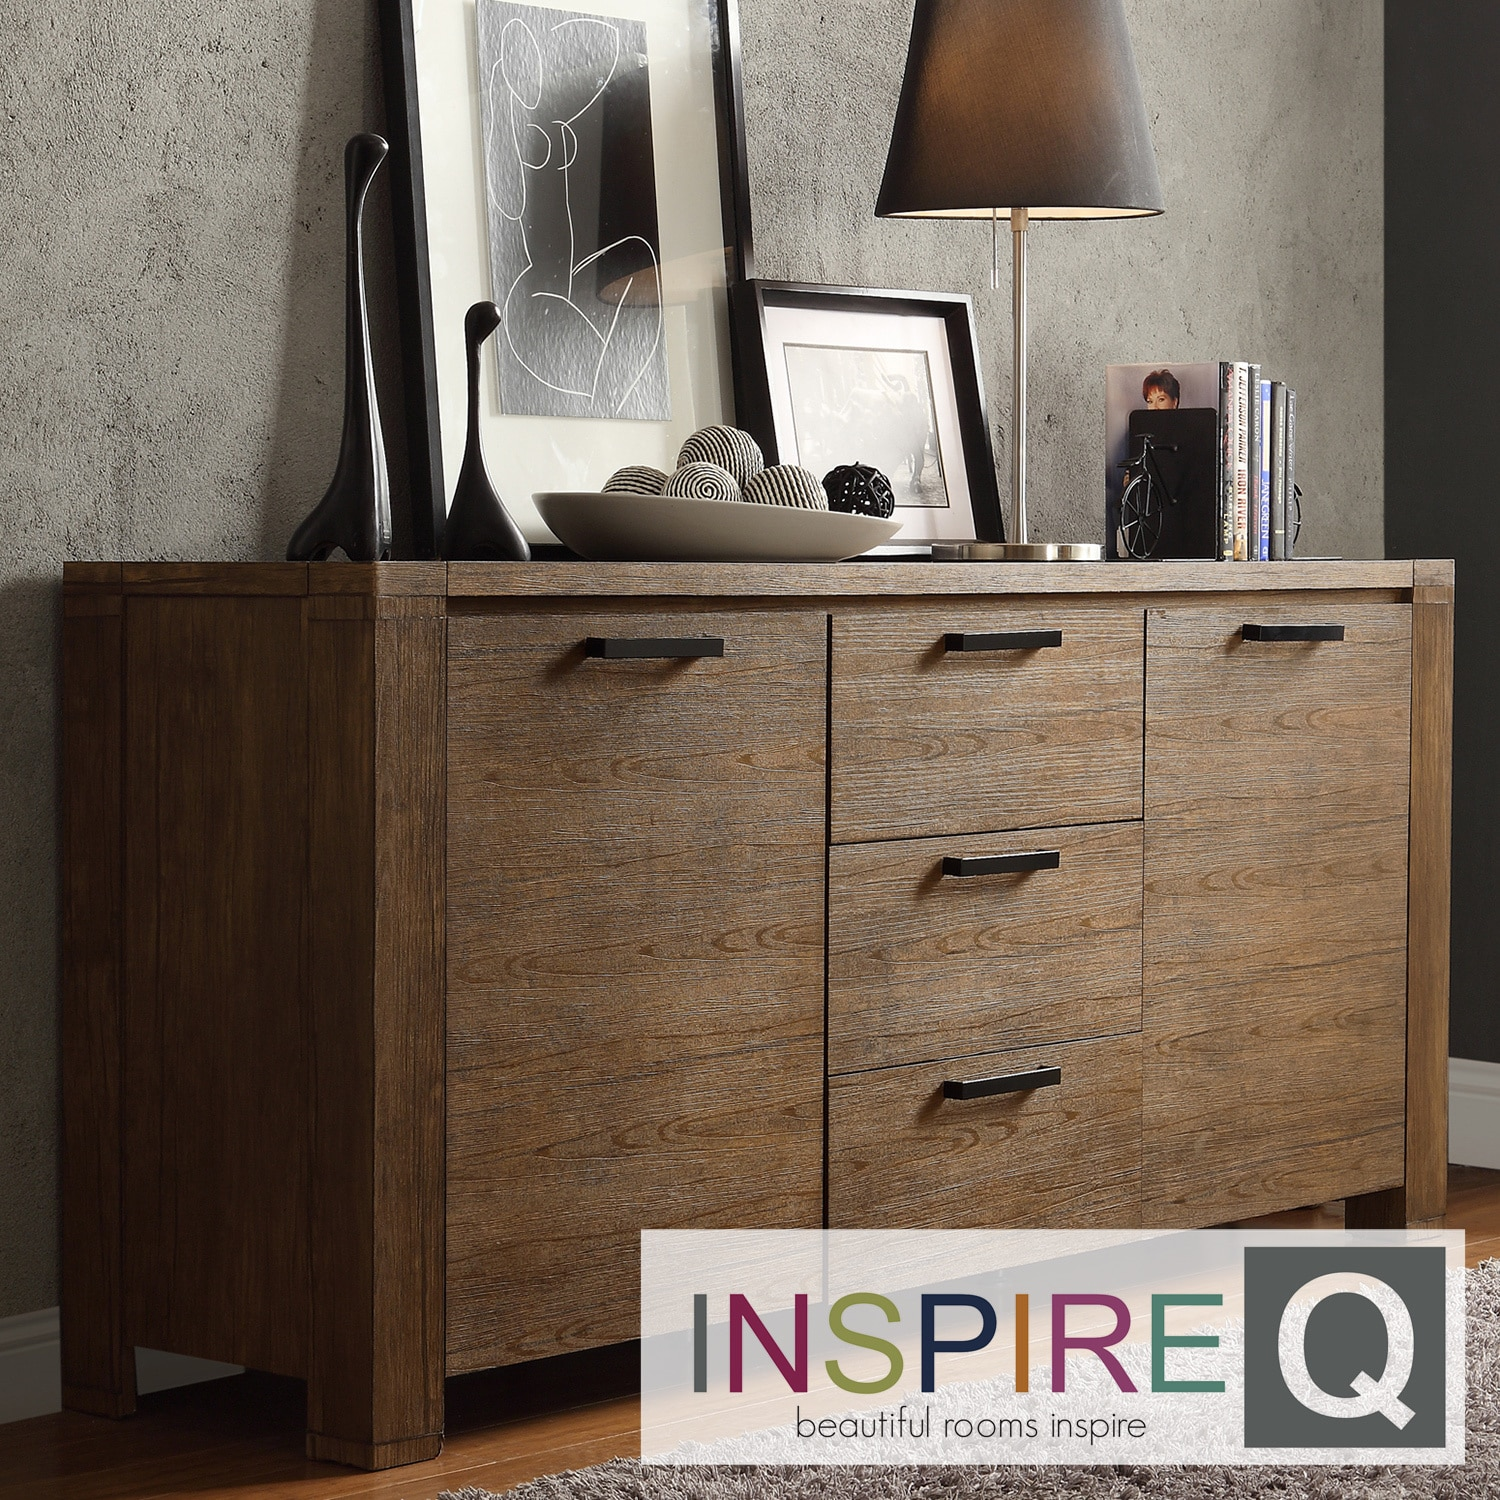 INSPIRE Q Catalpa Walnut Finish Weathered Highboard